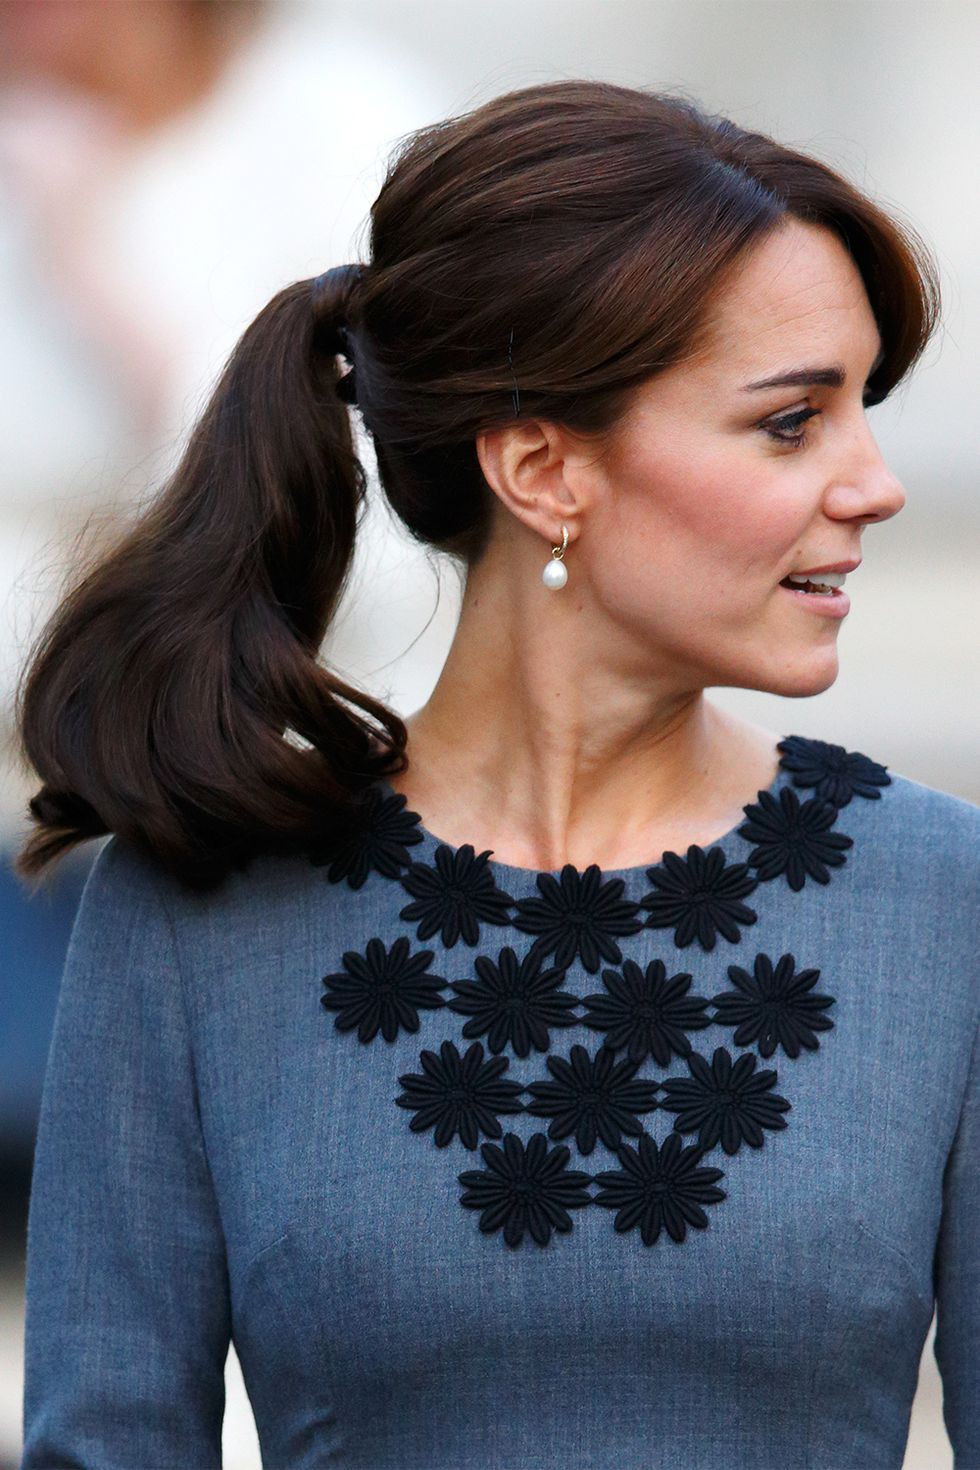 hbz-royal-hair-2015-kate-middleton-gettyimages-494556960-1500305808